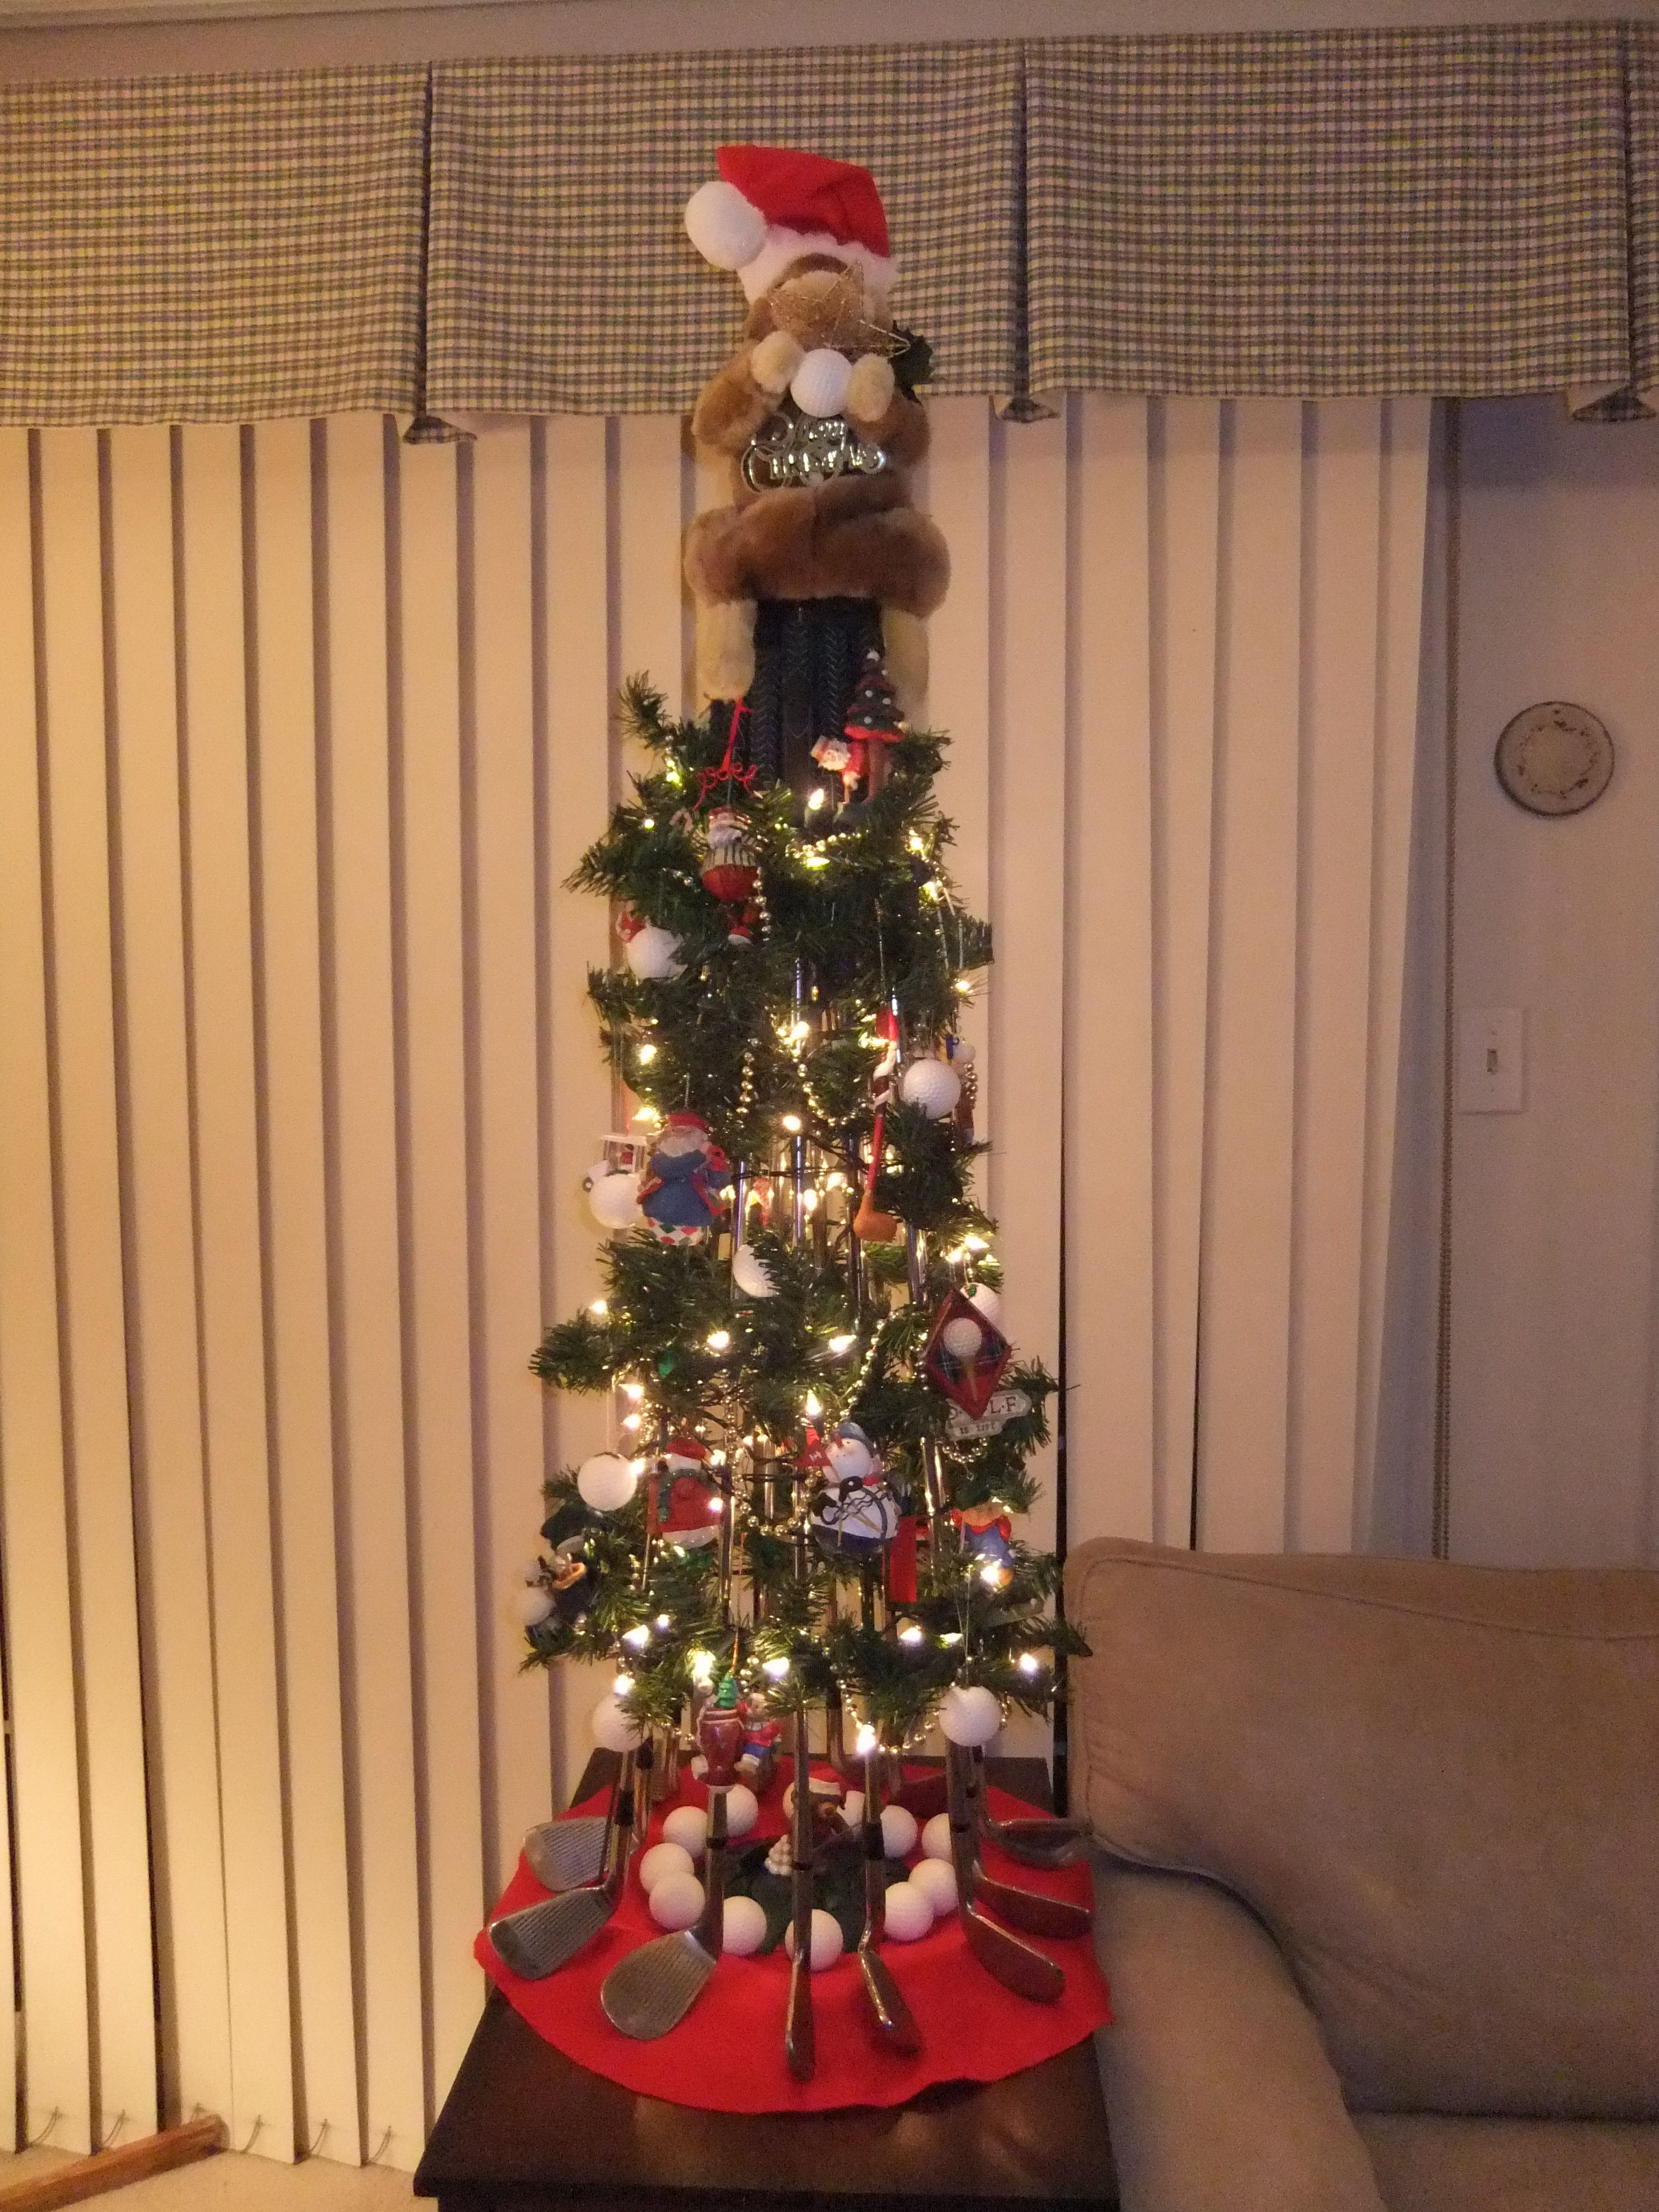 Christmas tree made from golf clubs